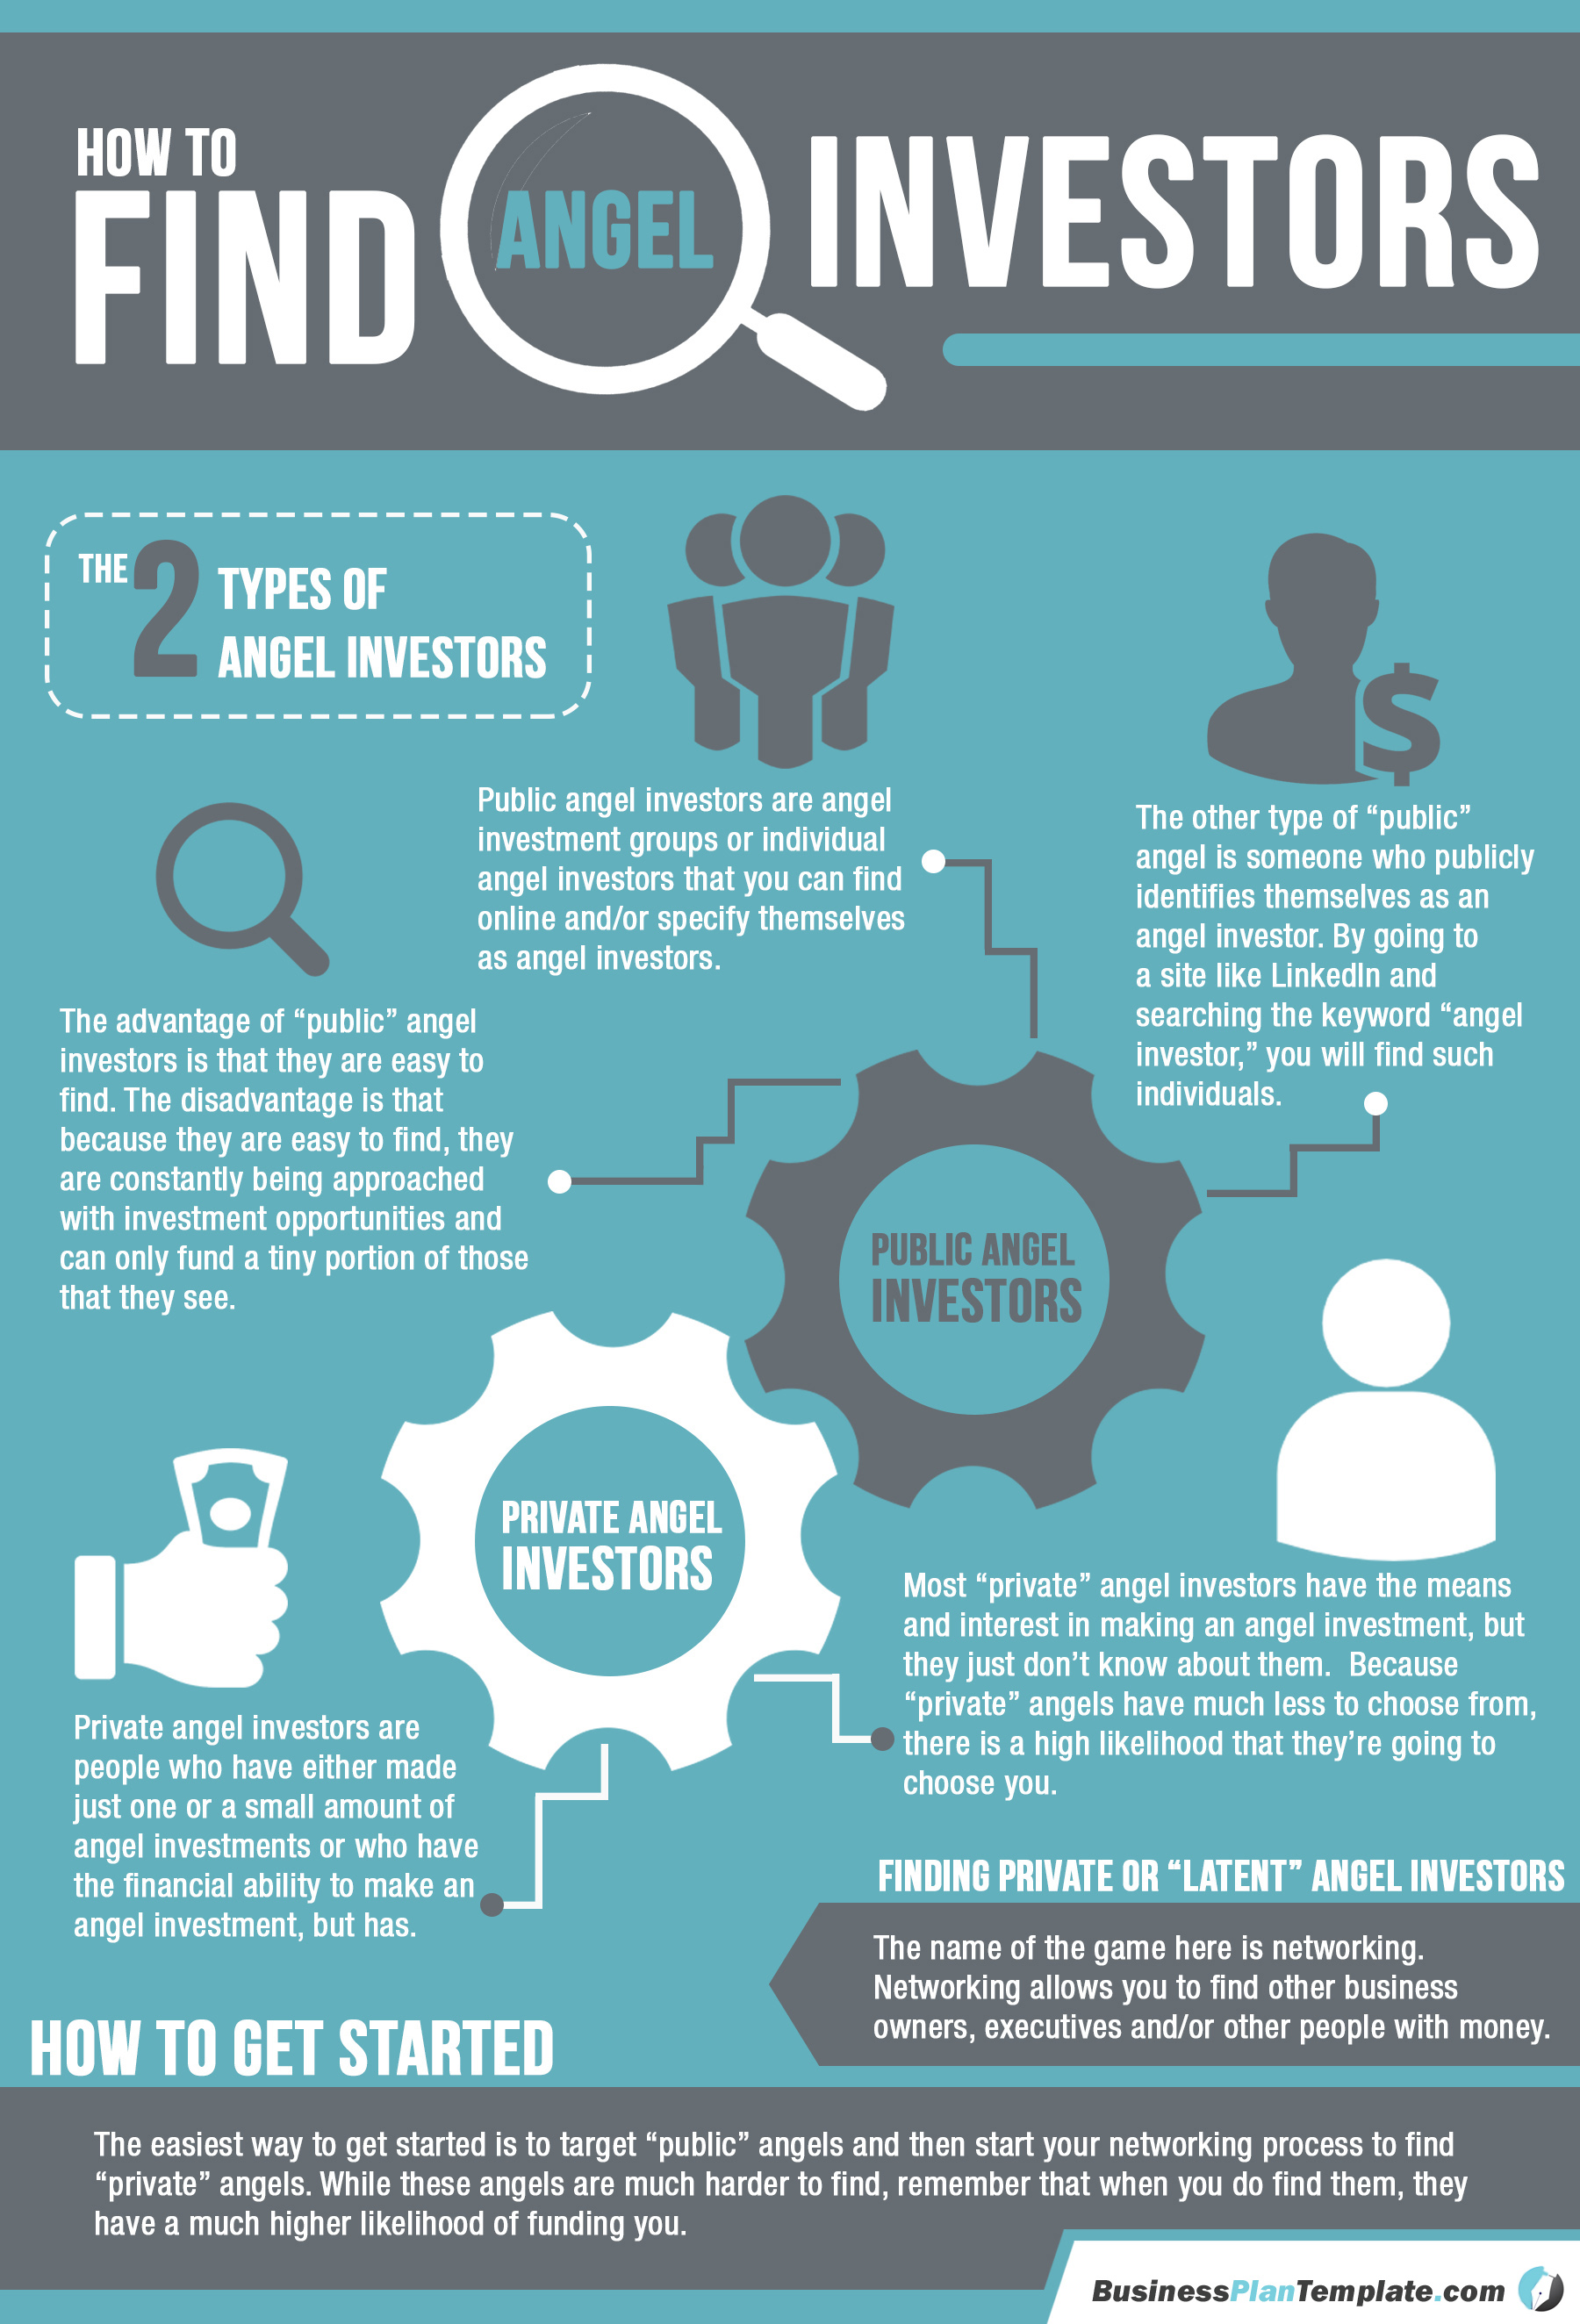 How-to-Find-Angel-Investors-Infographic